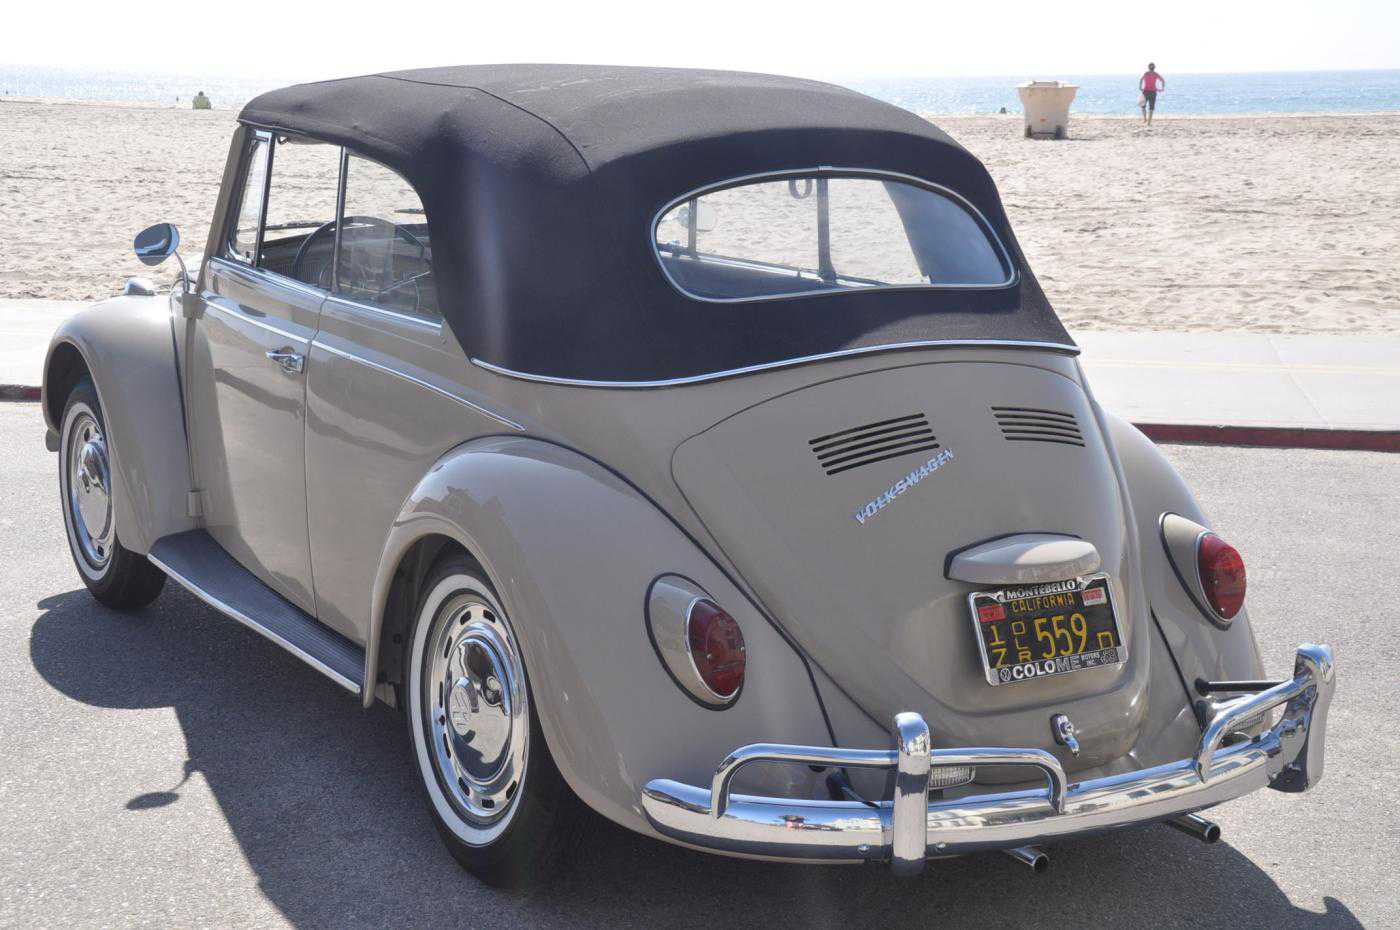 1967 vw beetle convertible buy classic volks. Black Bedroom Furniture Sets. Home Design Ideas